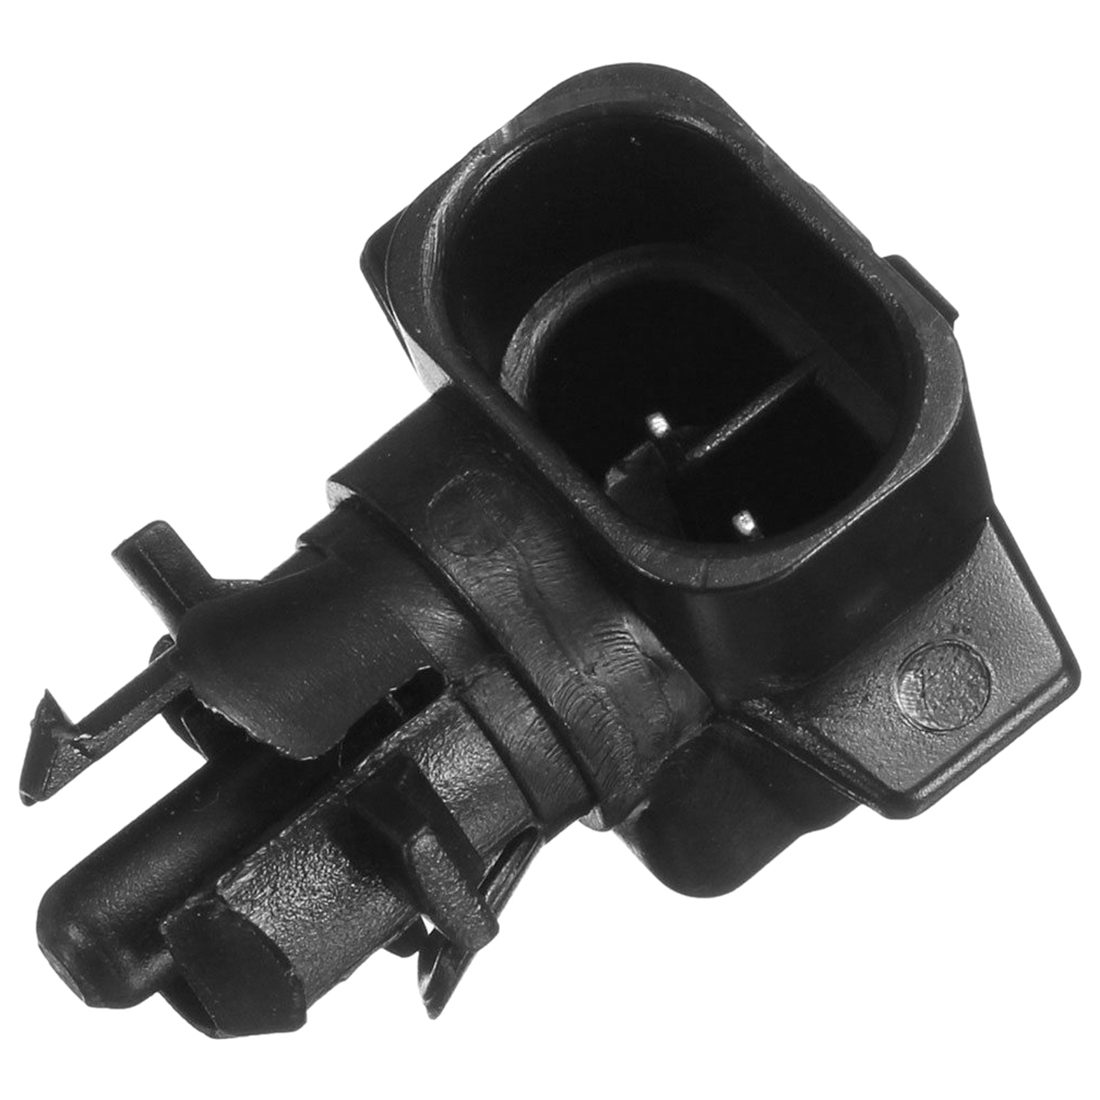 For Vauxhall Corsa Astra Vectra Zafira Outside Air Temperature Sensor -9152245For Vauxhall Corsa Astra Vectra Zafira Outside Air Temperature Sensor -9152245